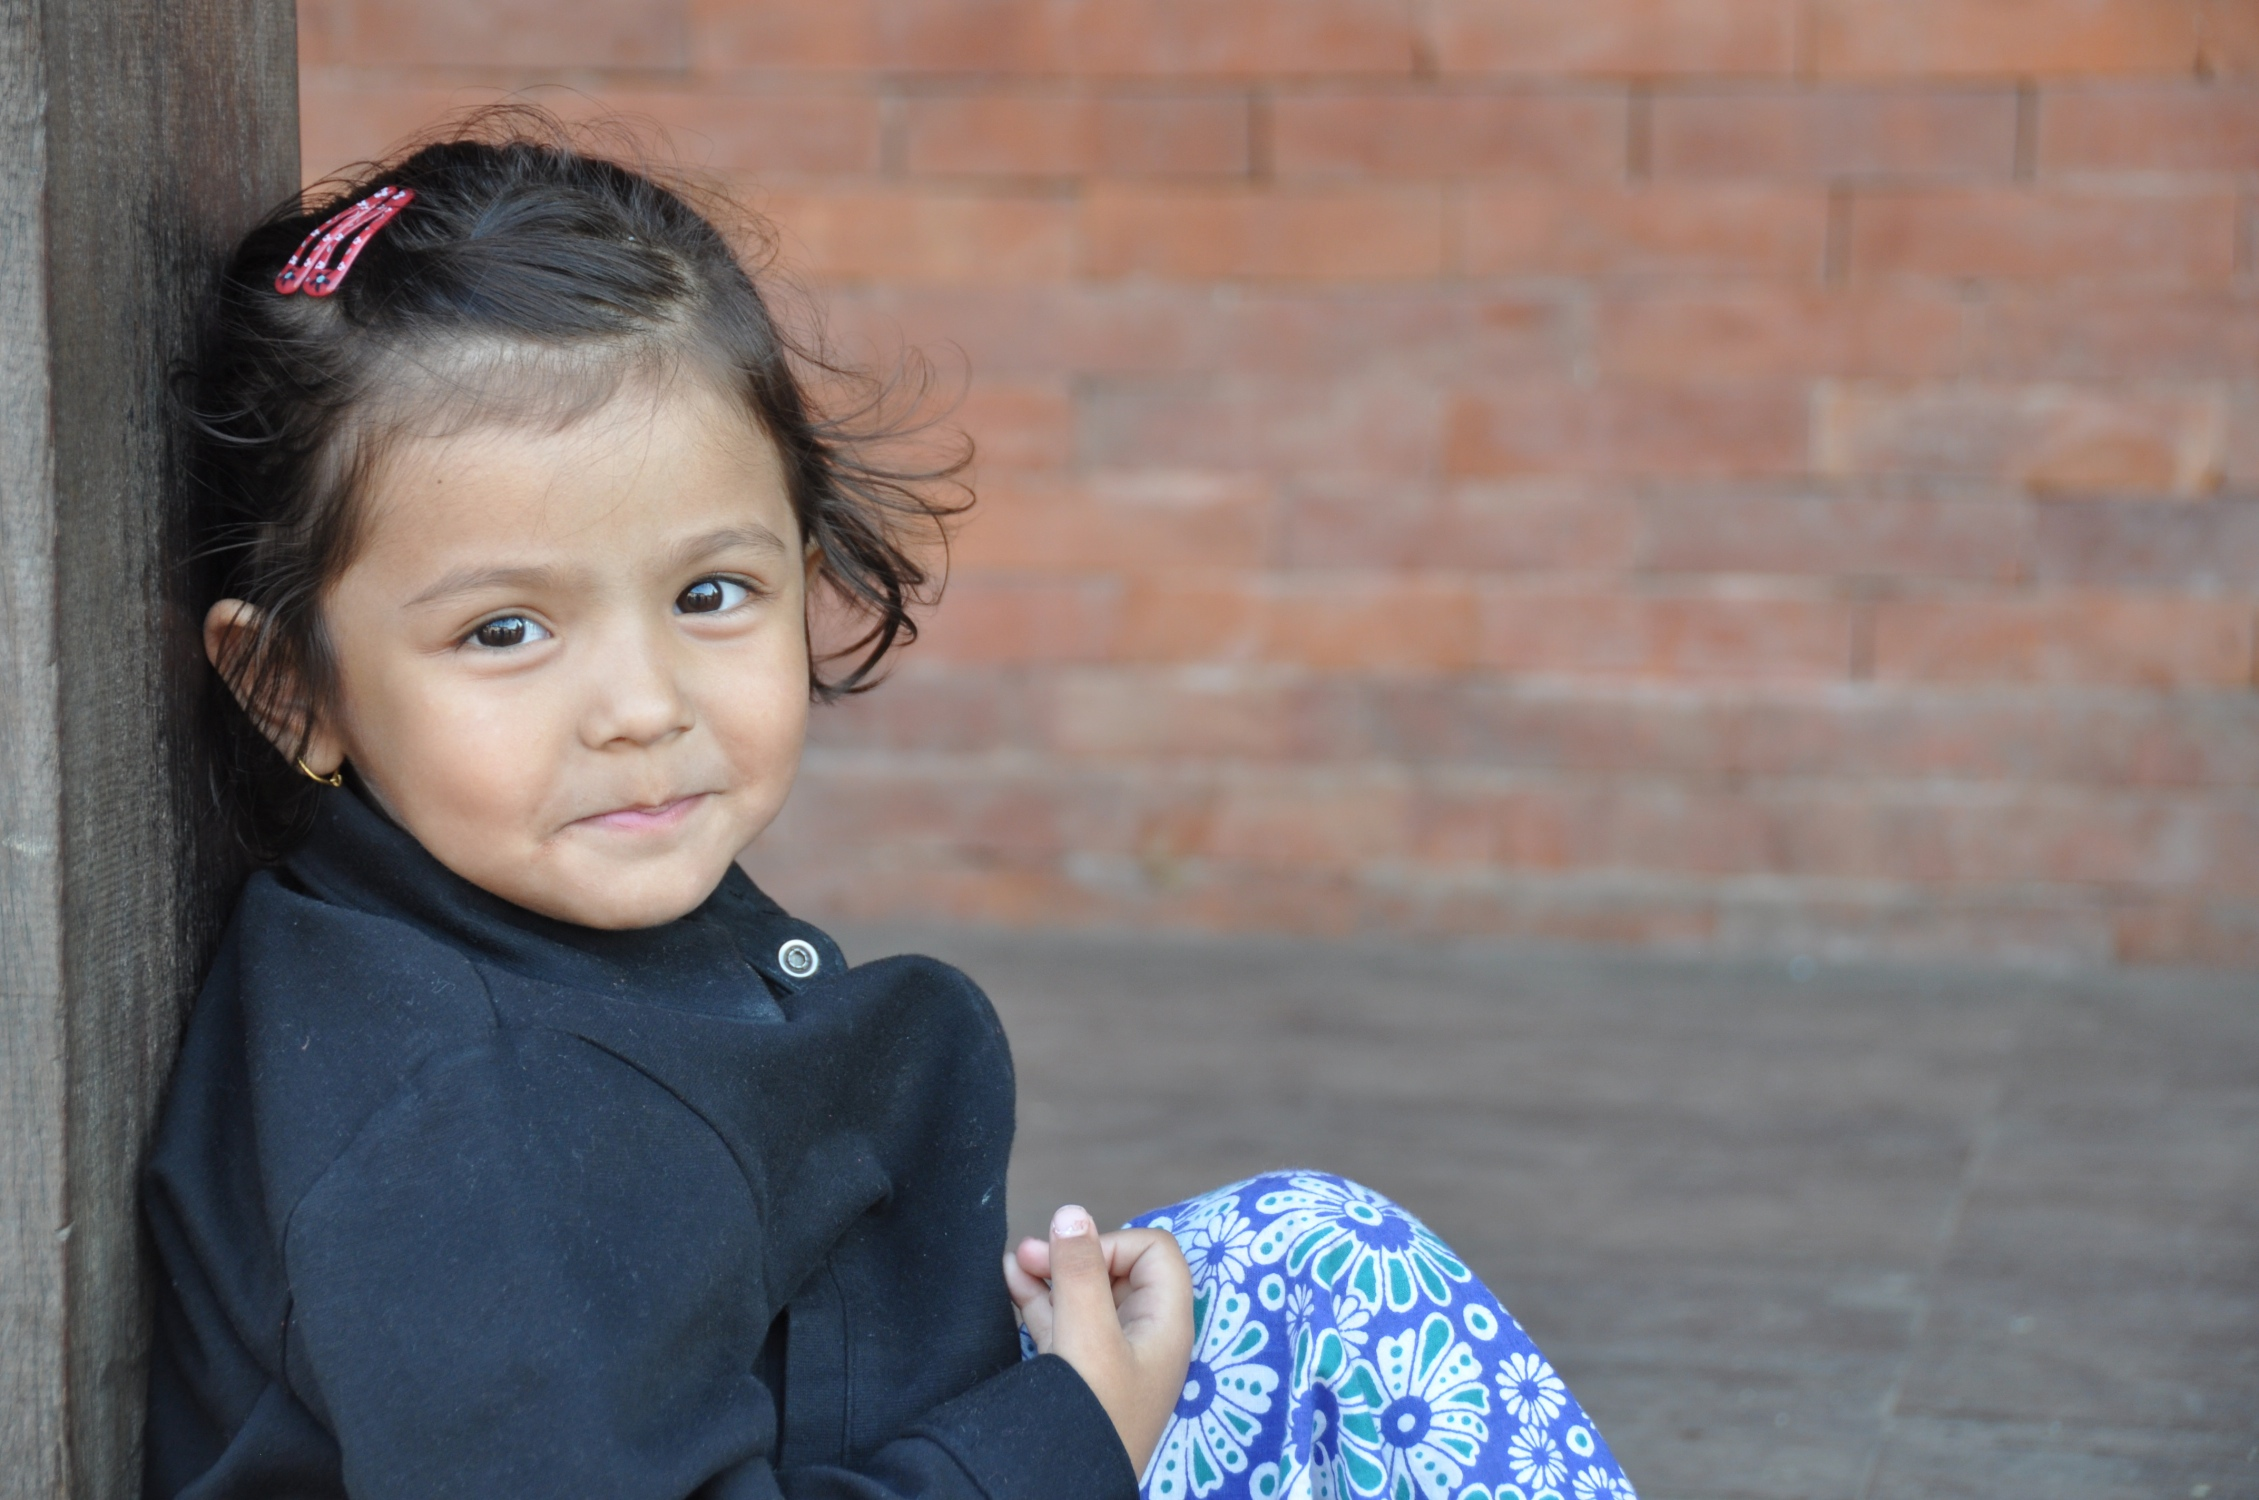 Shristi    Shristi's mother wanted to abort her before she was born. Family and friends intervened and kept her from doing that. When the baby was born, she made it clear that she didn't want her and even threatened to take her life. The family contacted David and Sony who took her right away. Shristi is now thriving under their loving care. Another precious little one saved.